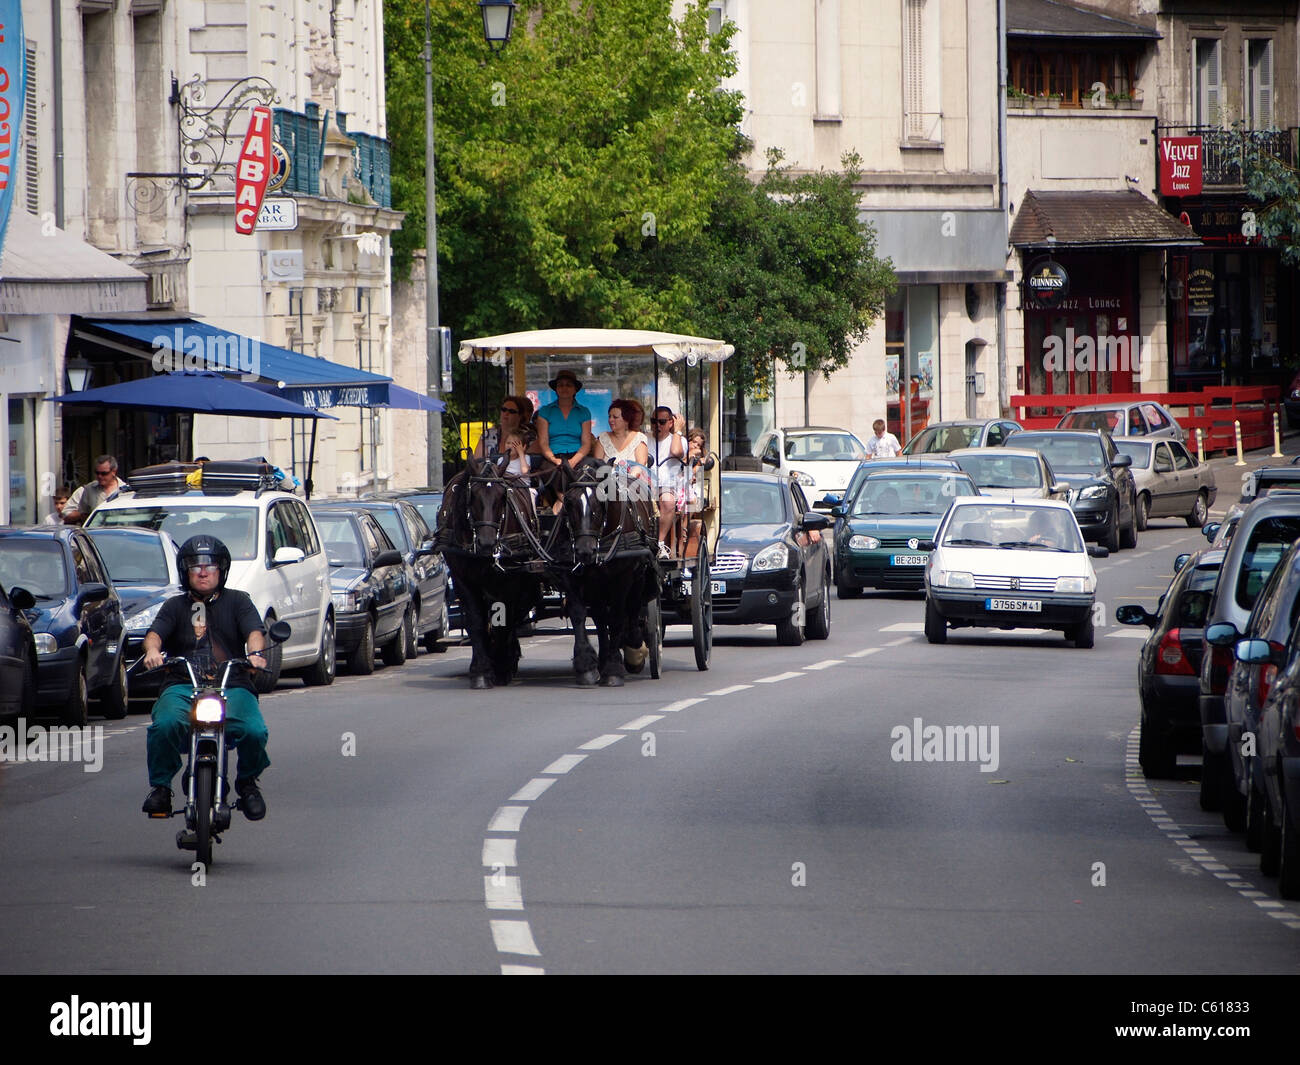 Horse and carriage carrying tourists through the streets of Blois, Loire valley, France - Stock Image